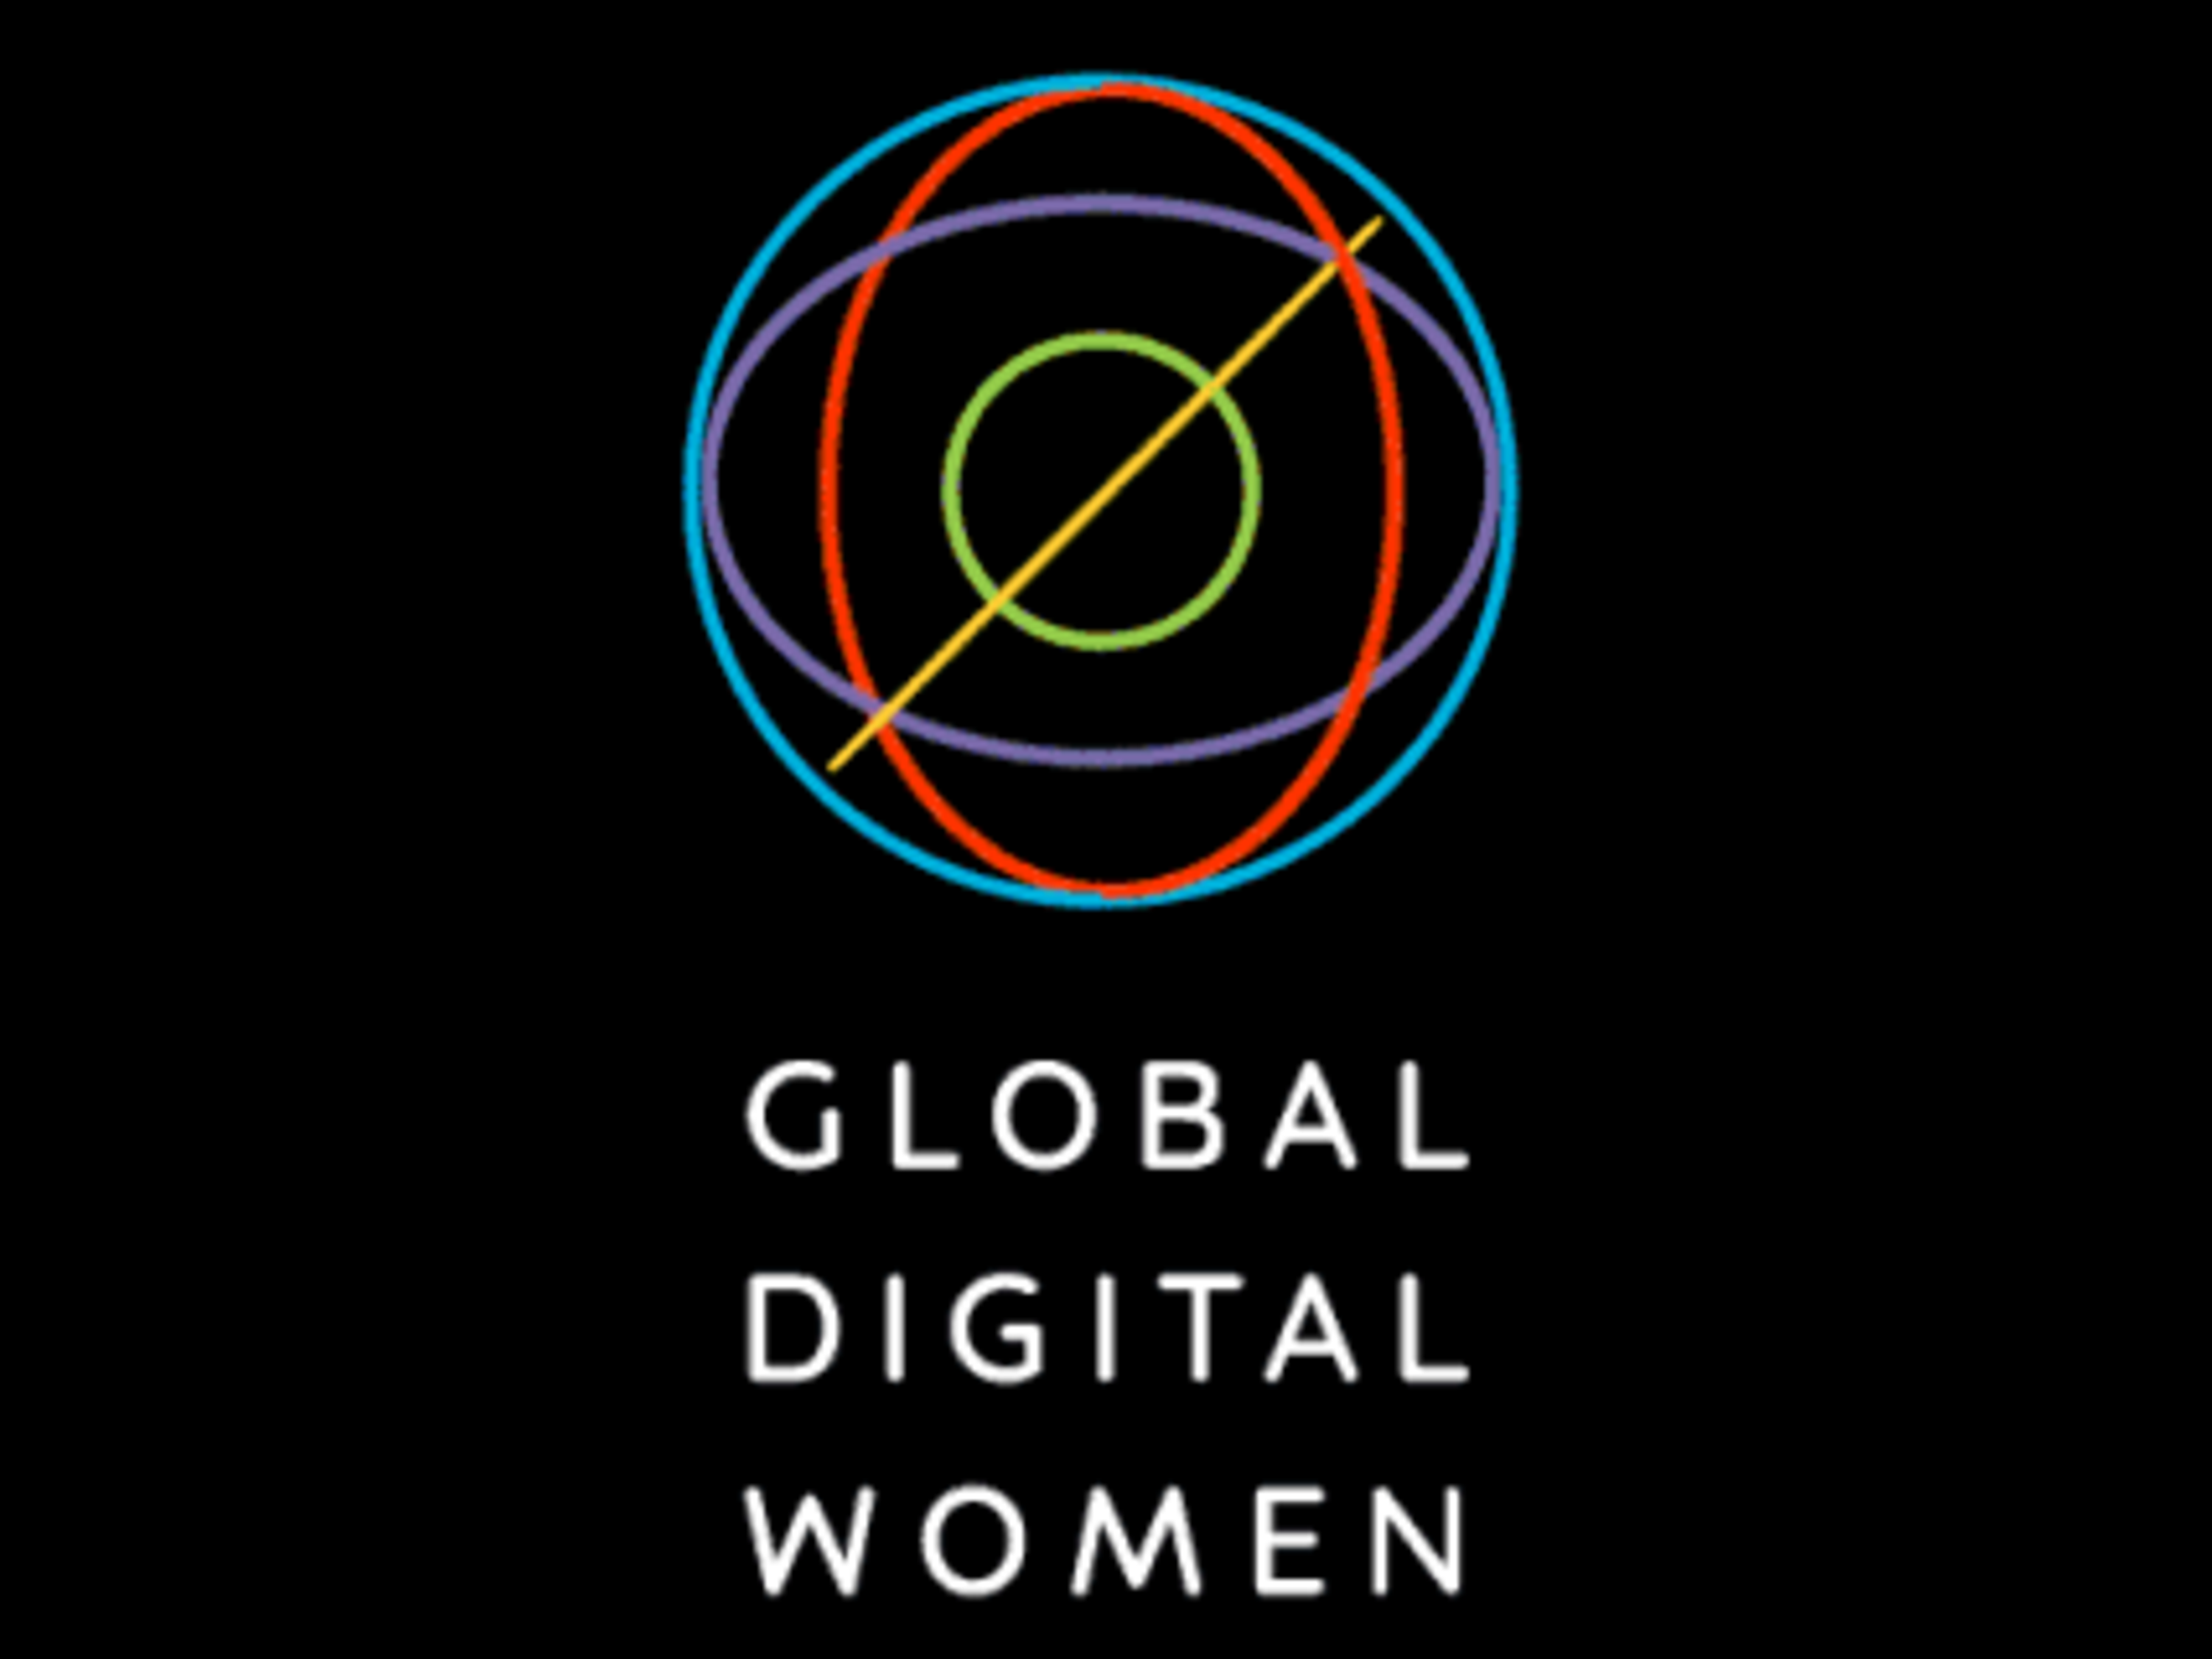 Global Digital Woman